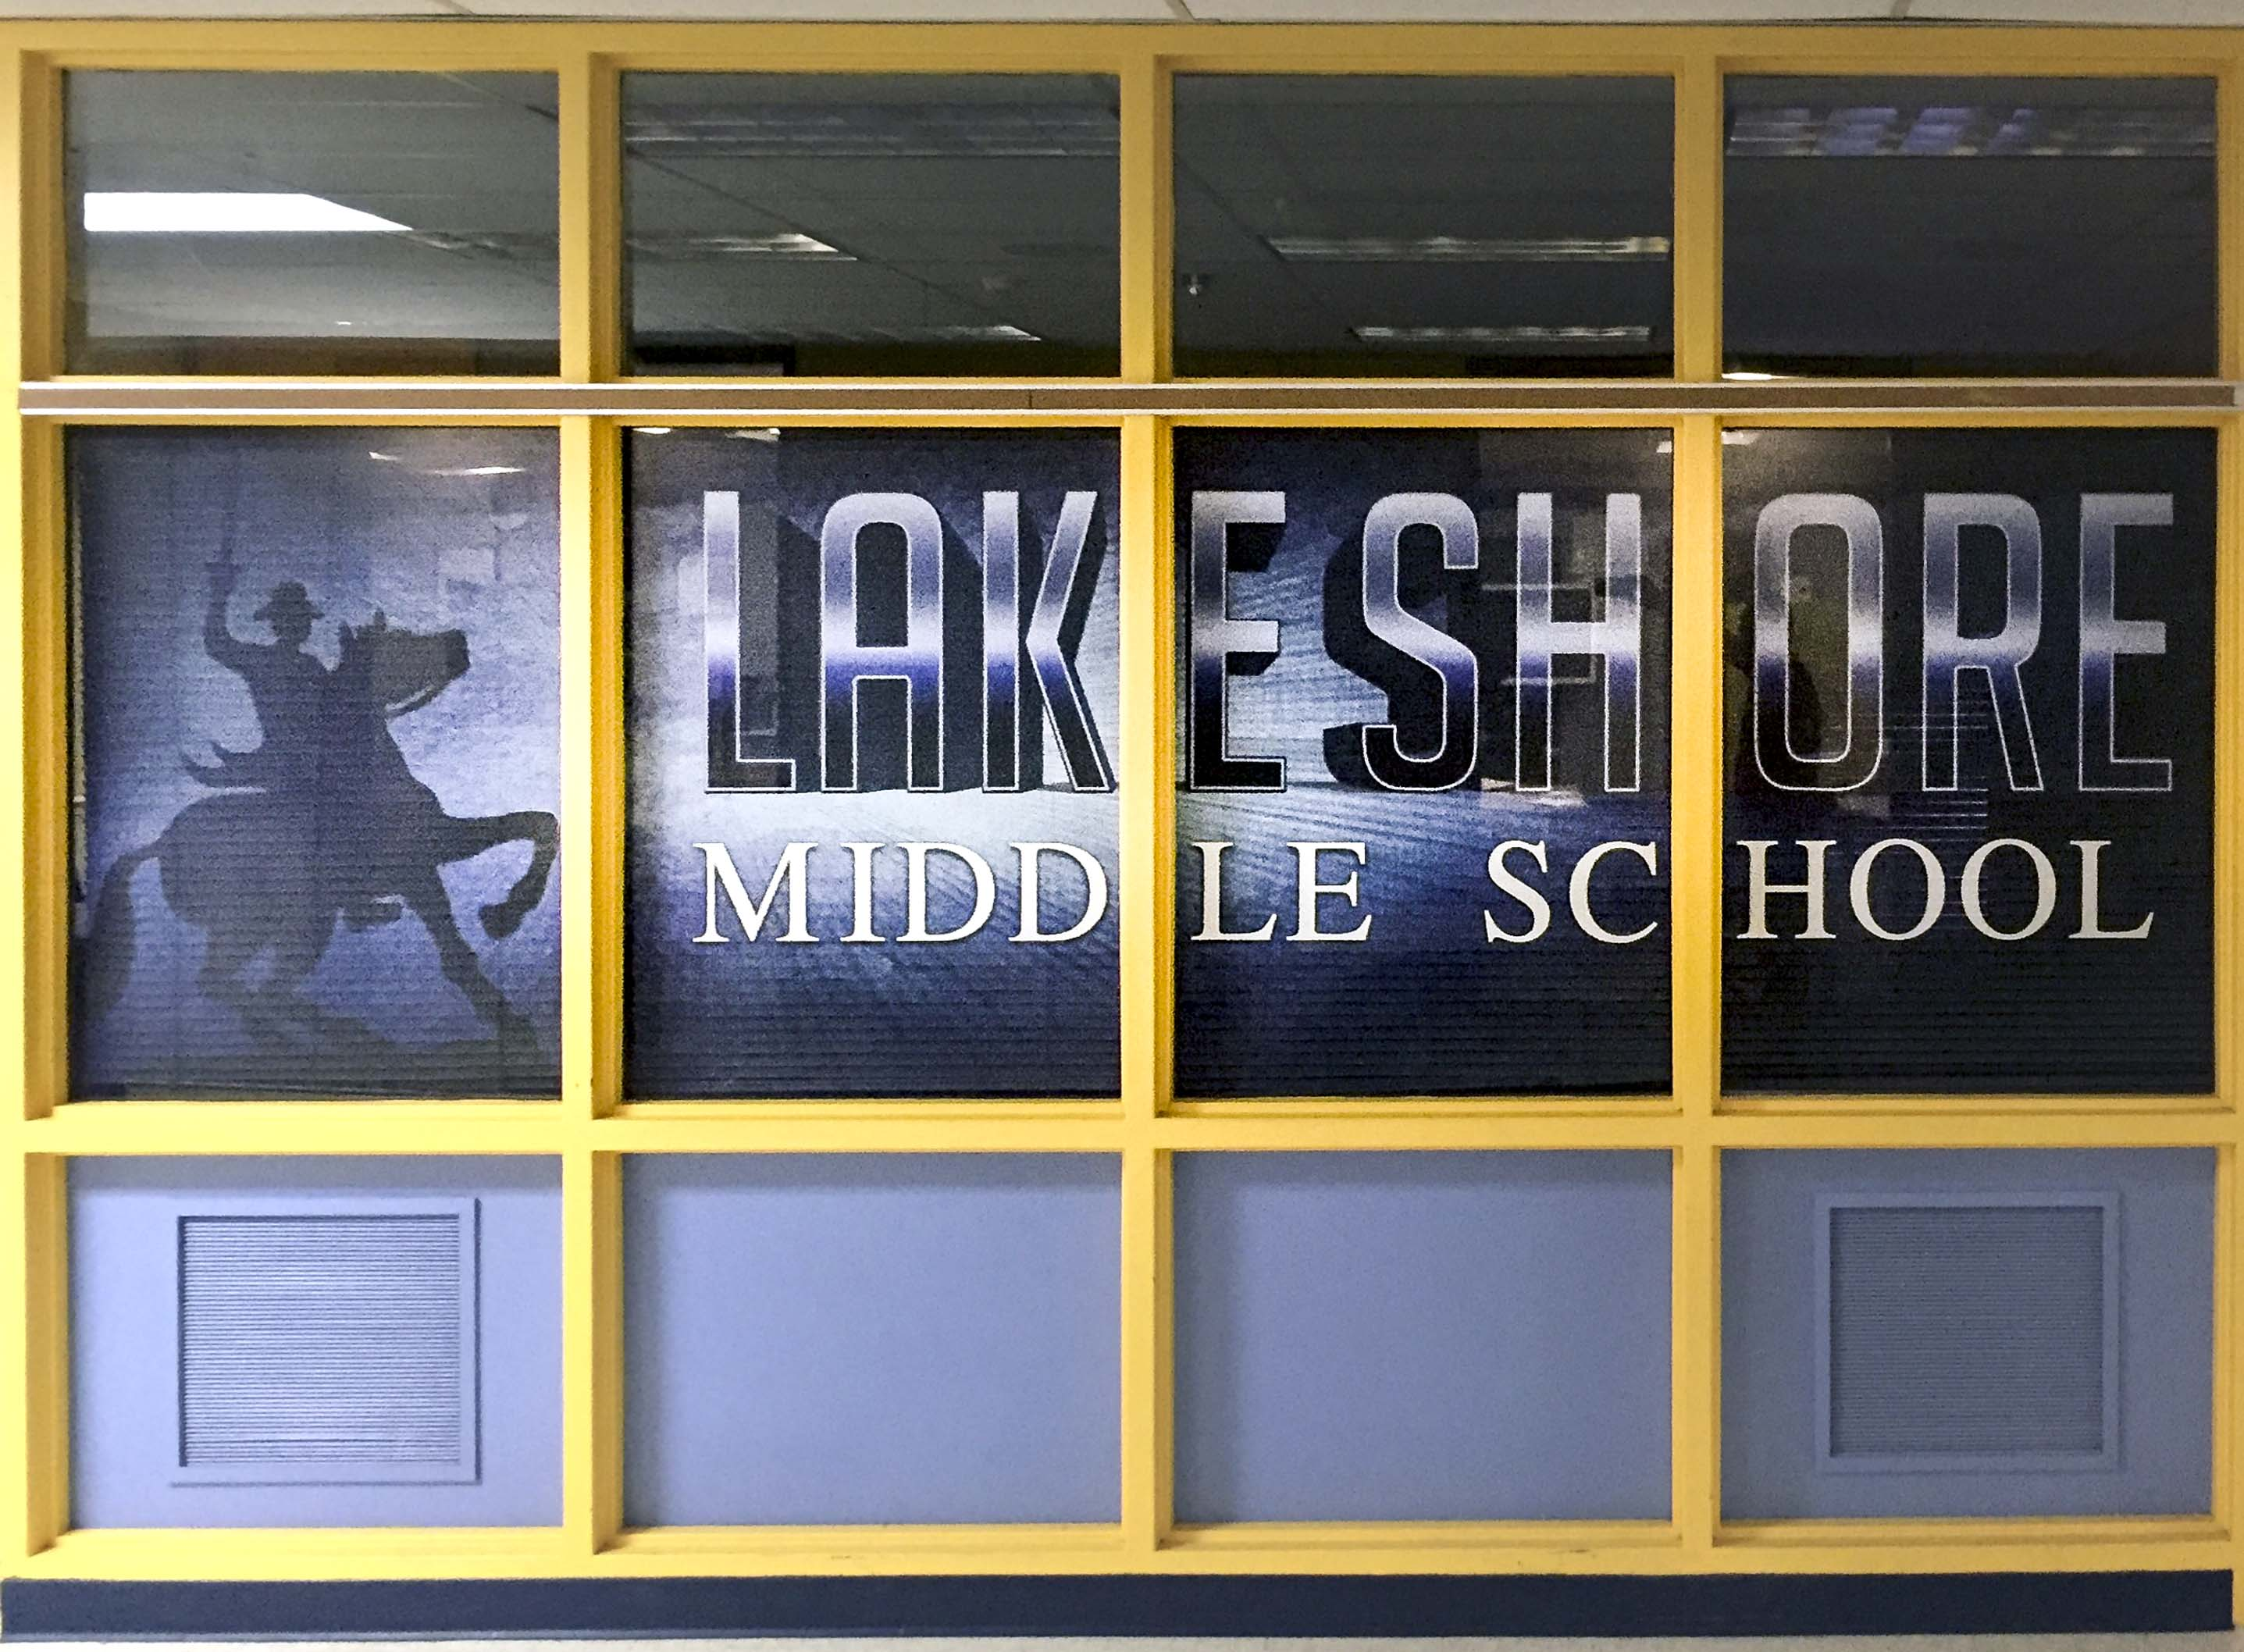 Lake Shore Middle School perforated window graphic